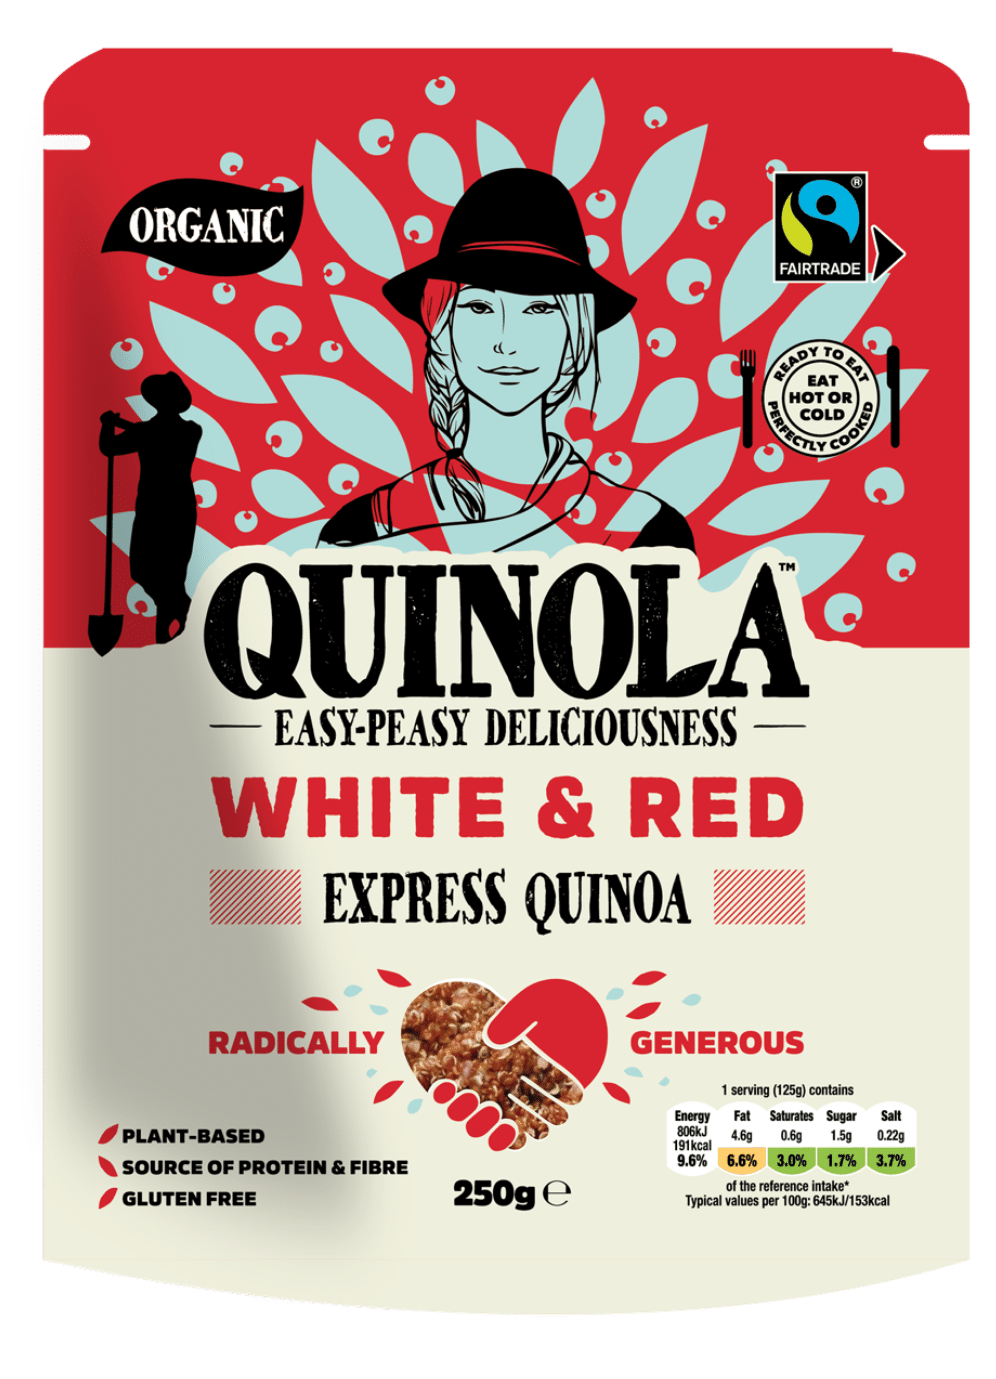 White and Red Ready to Eat Quinoa